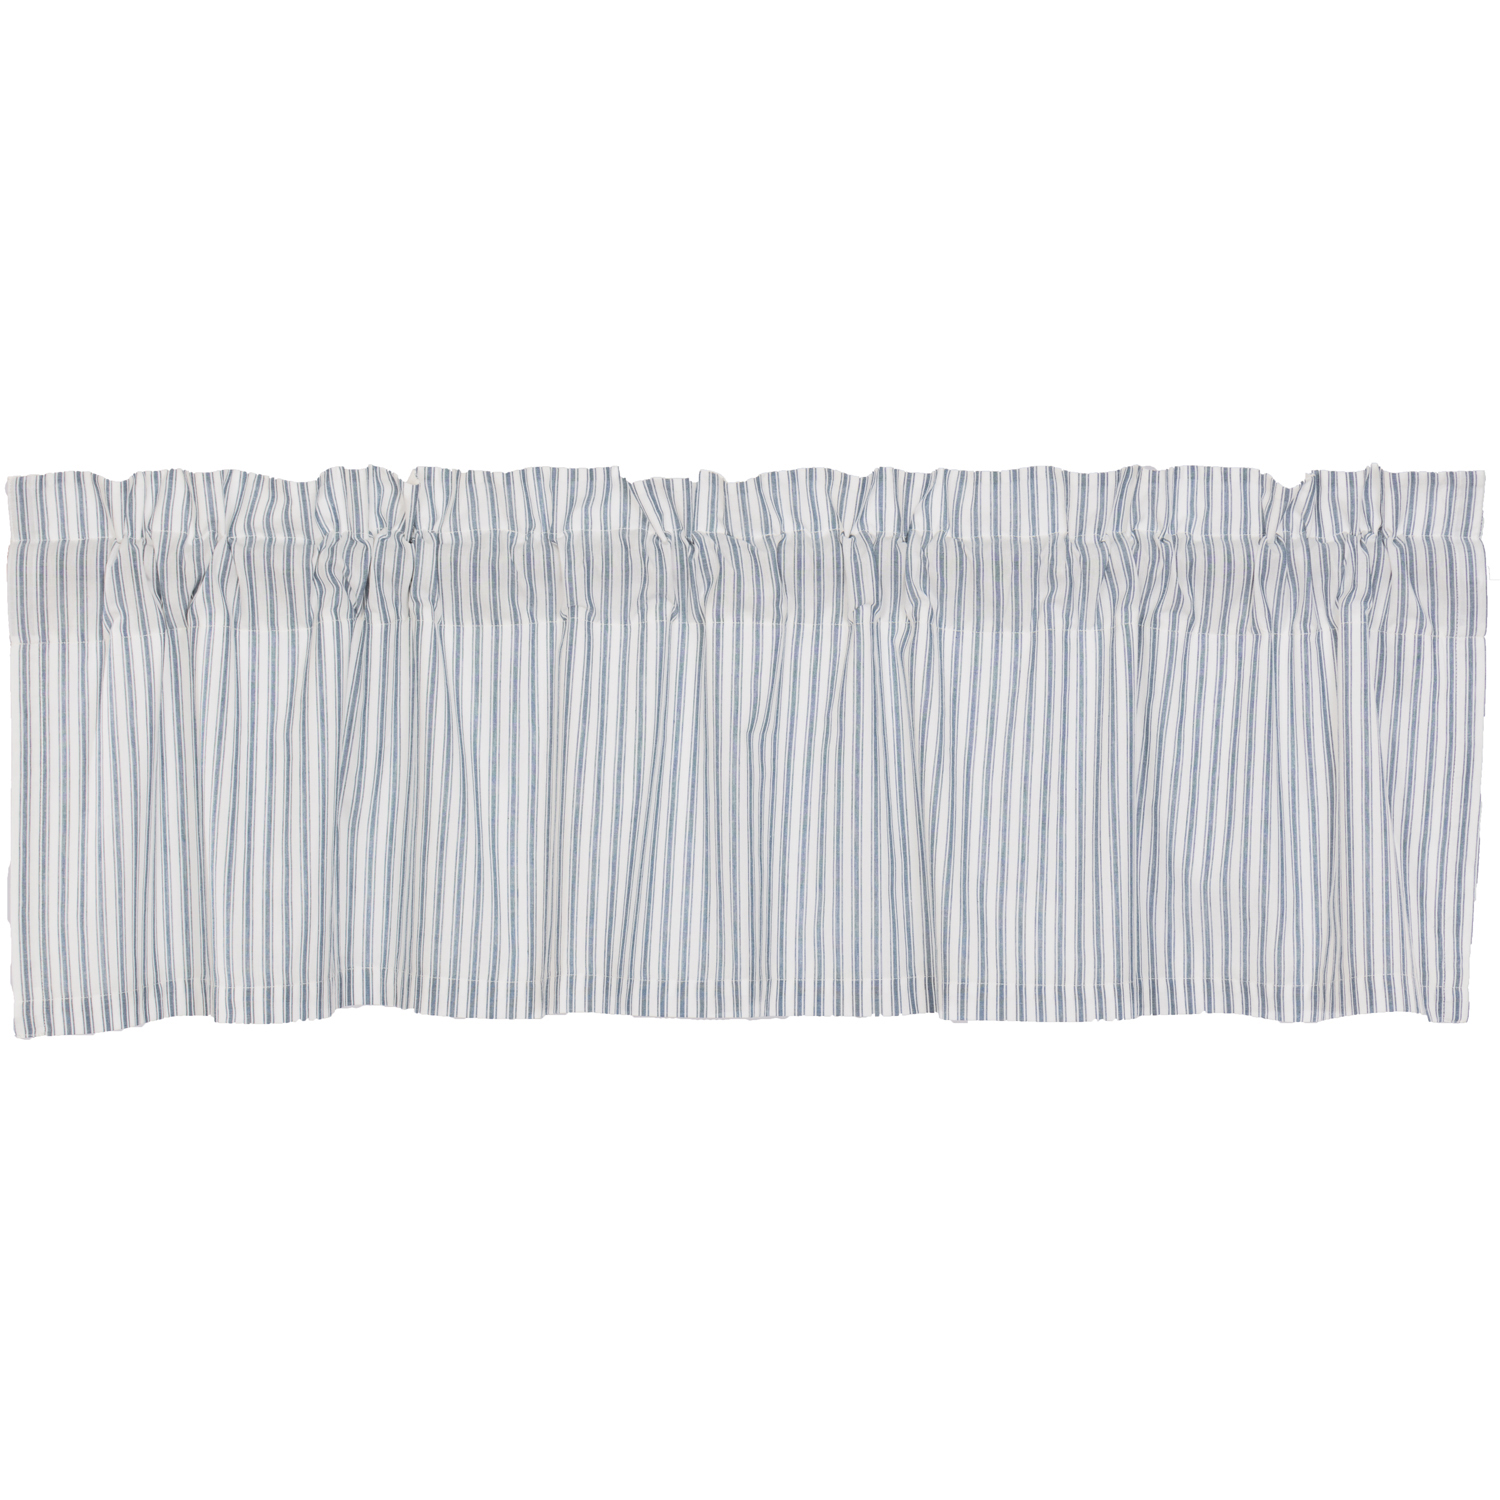 Sawyer Mill Blue Ticking Stripe Valance 16x60